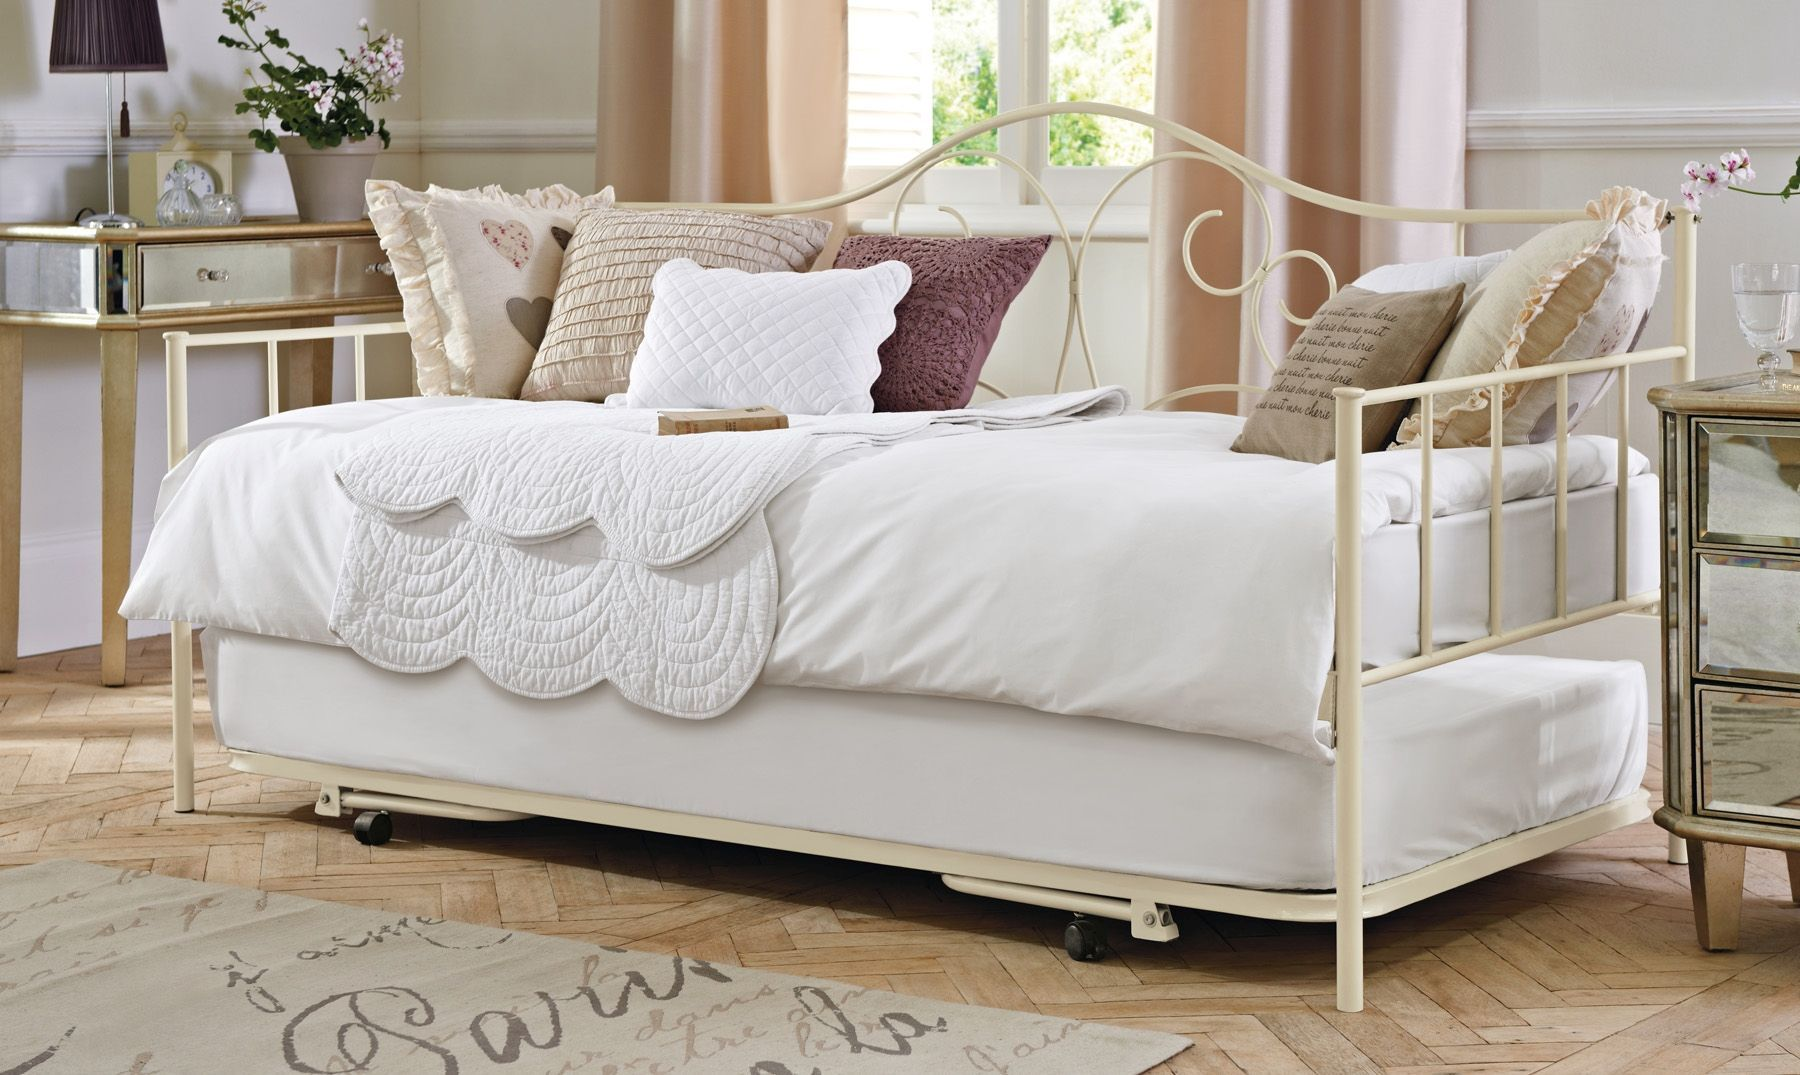 Buy Emilia Daybed From The Next Uk Online Shop Guest Bedrooms